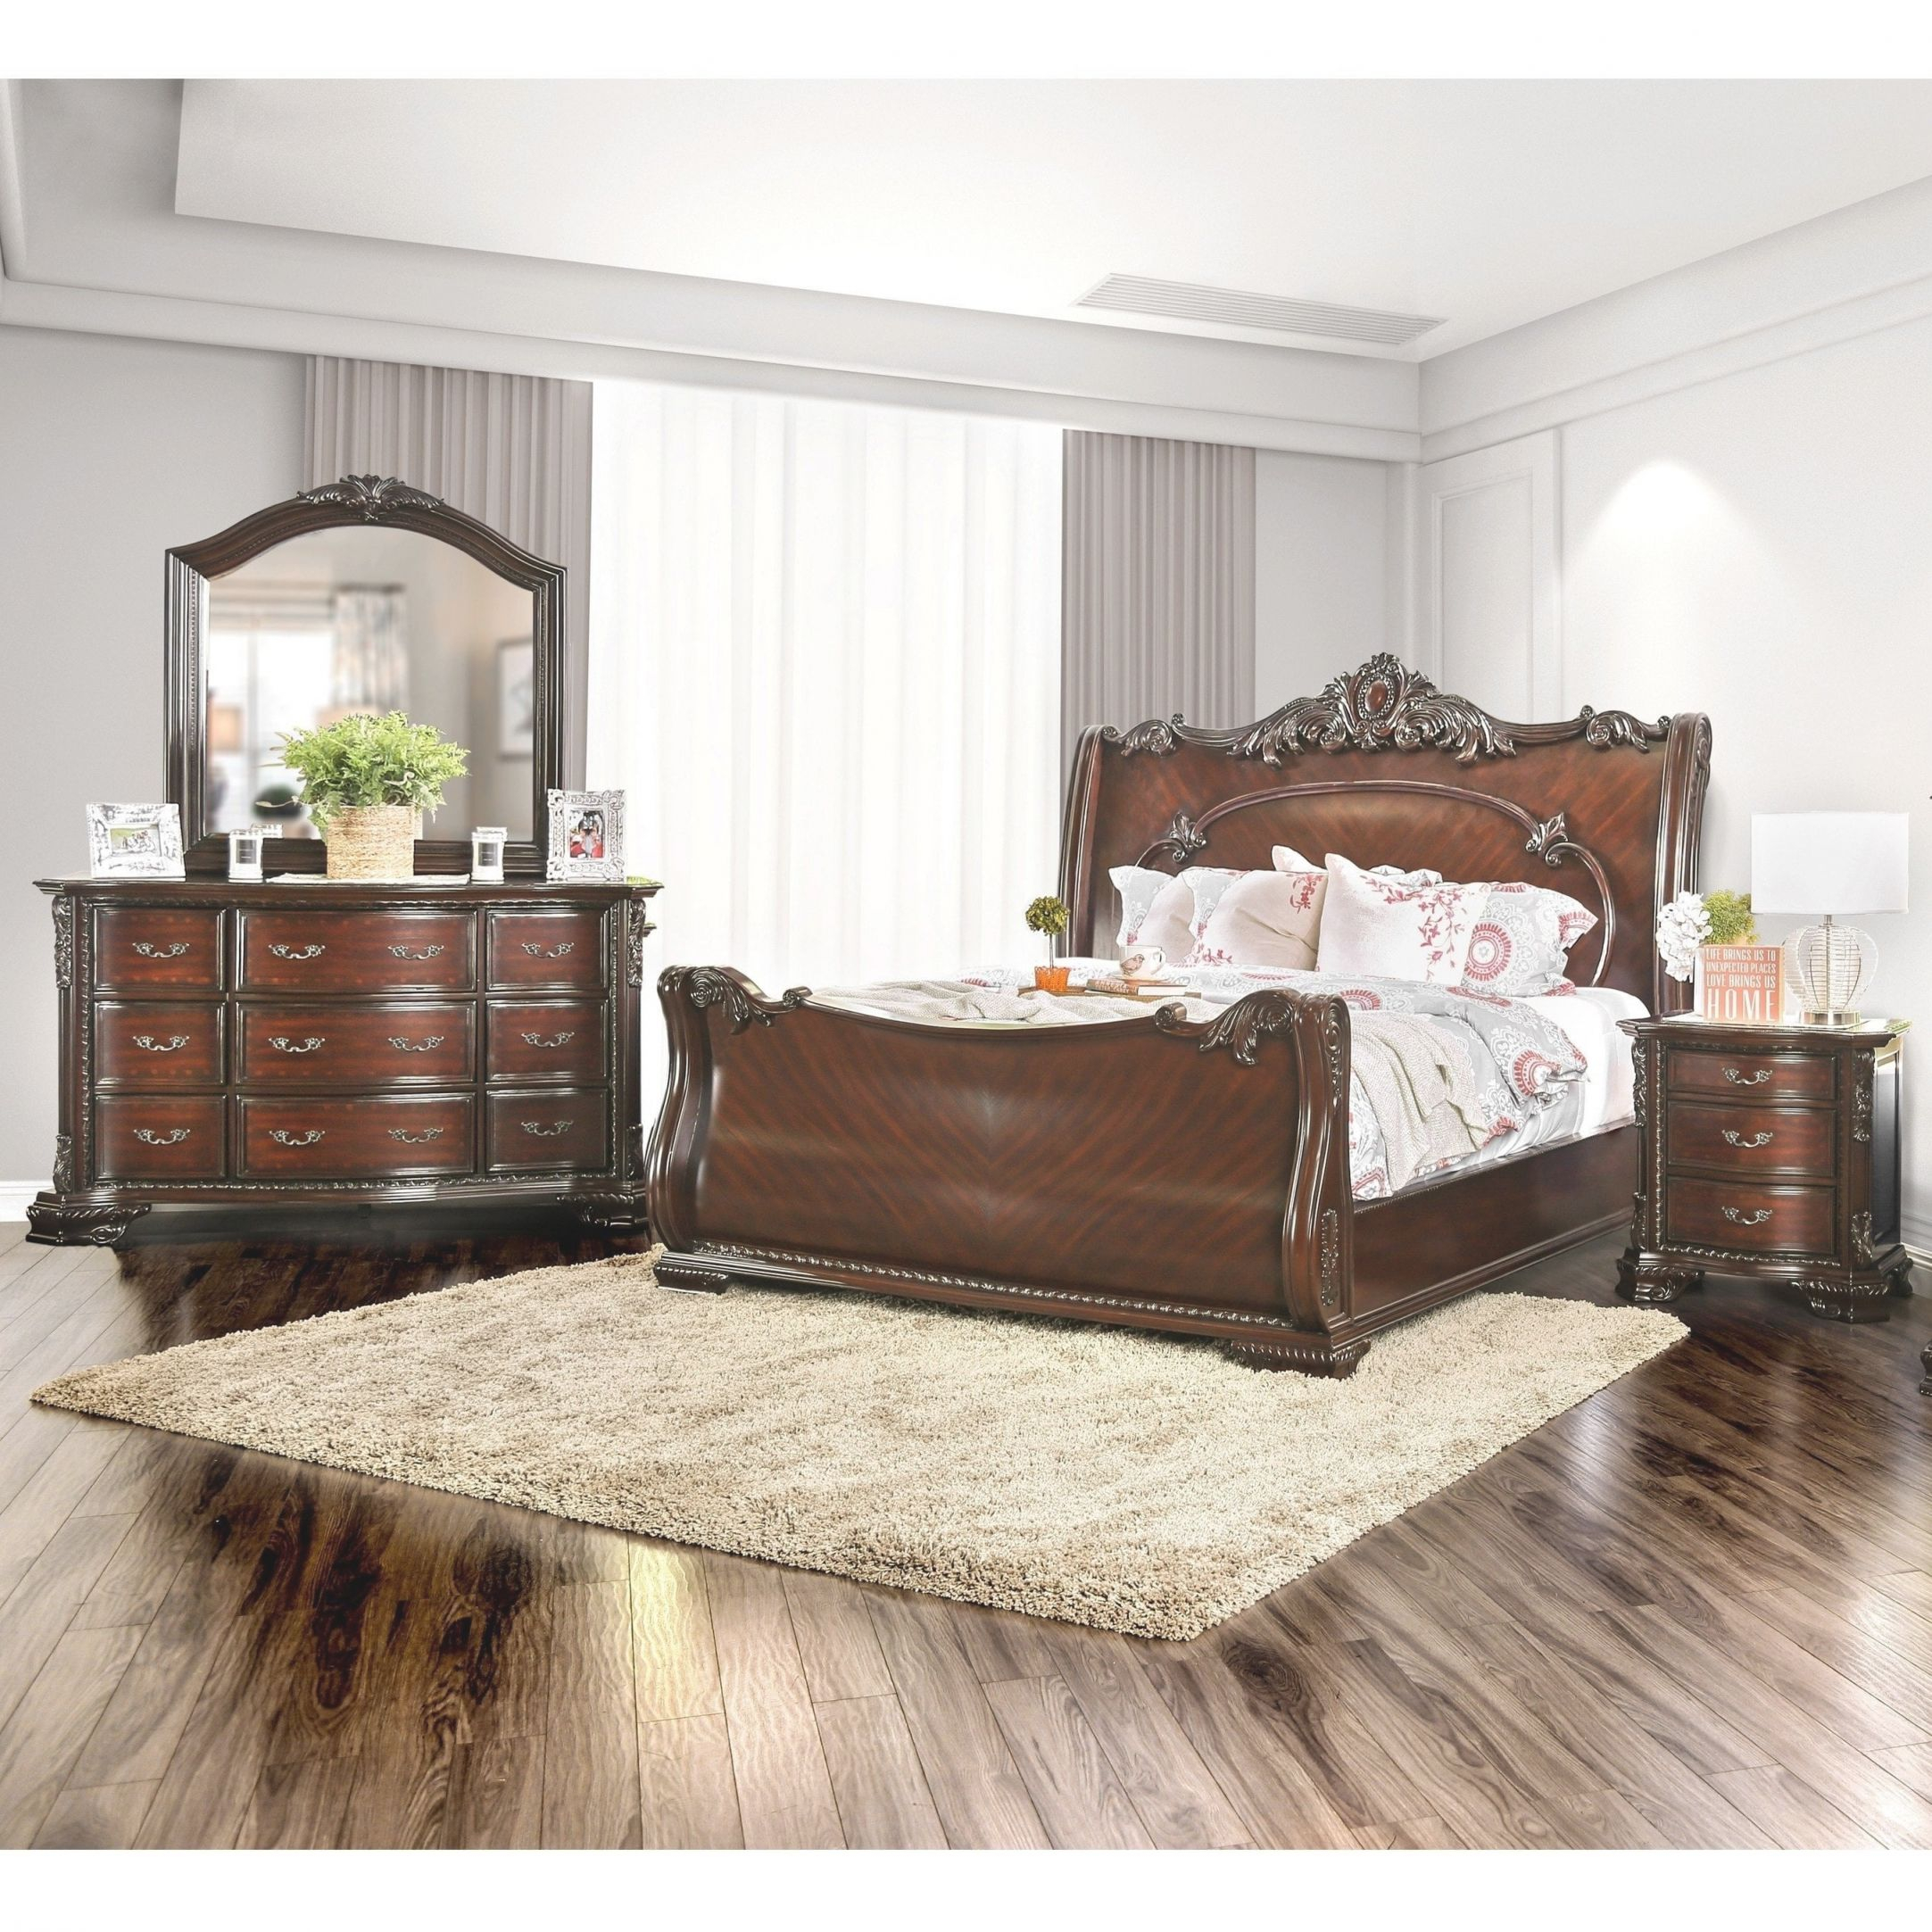 Luxury Traditional Brown Cherry 4-Piece Bedroom Setfoa intended for Awesome Bedroom Set Luxury